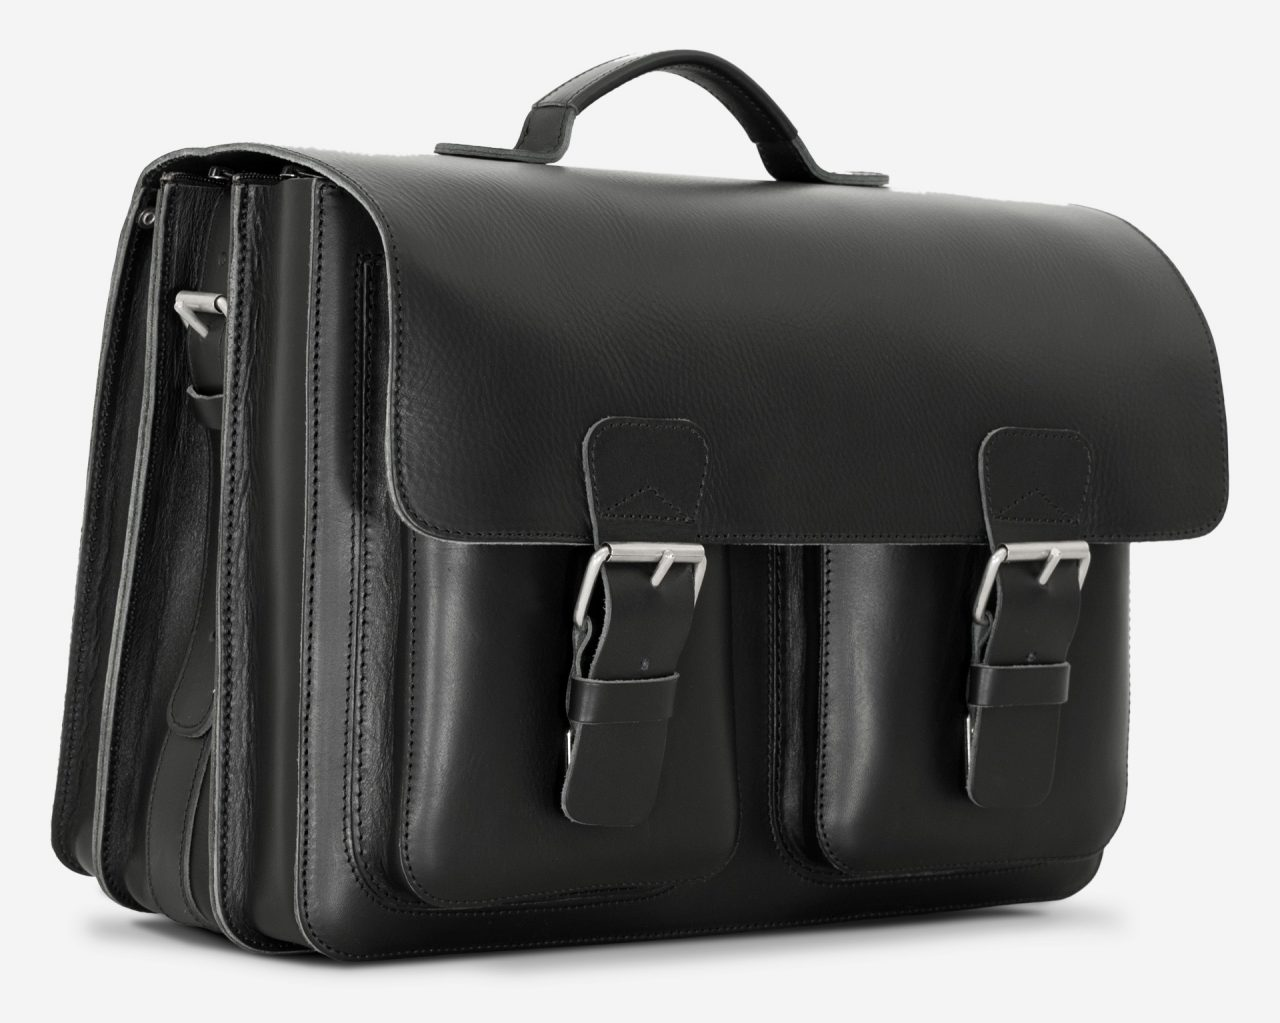 Side view of large black leather briefcase with 3 compartments and symmetric front pockets 112158.